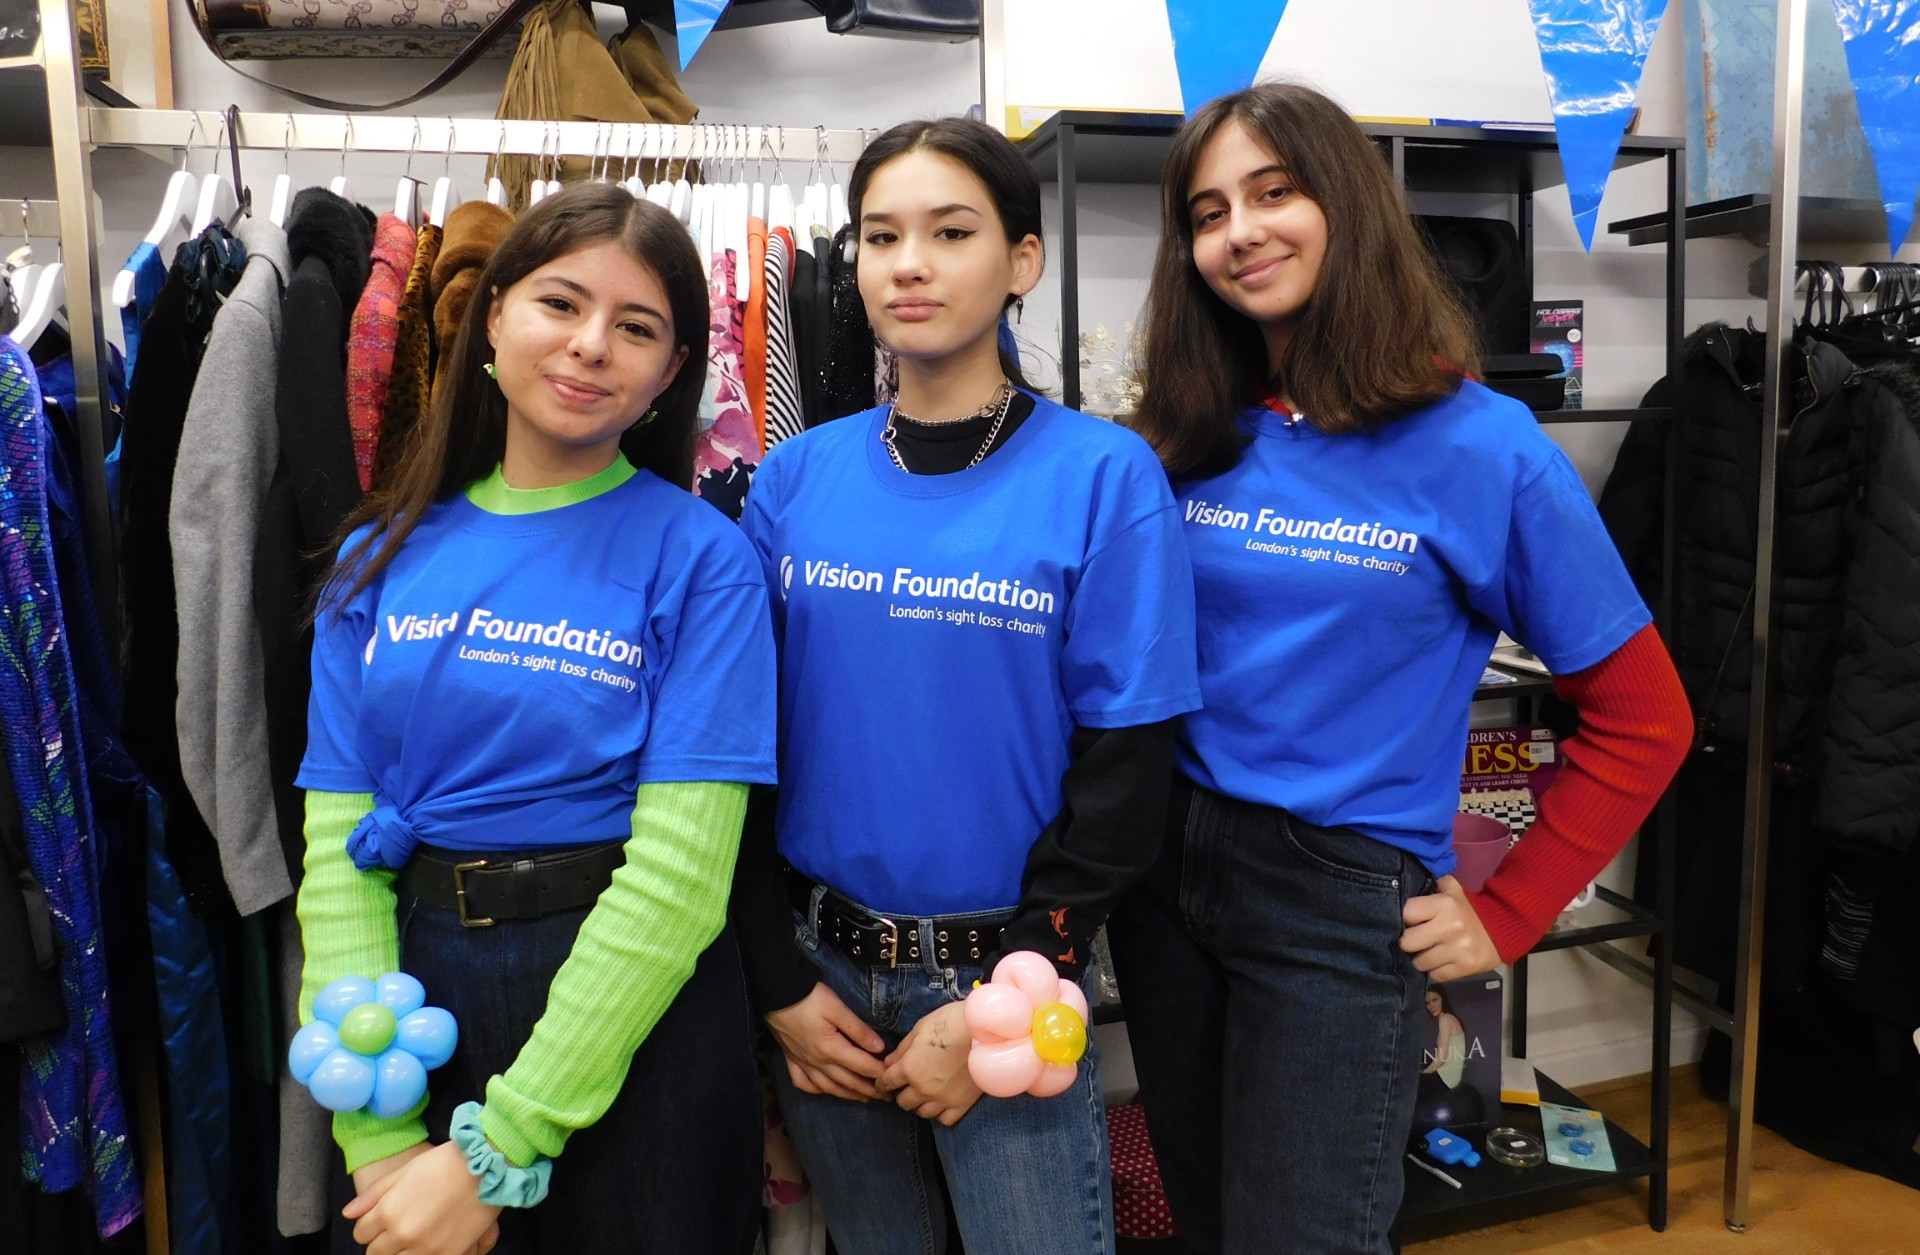 three shop volunteers pose wearing blue Vision Foundation t-shirts